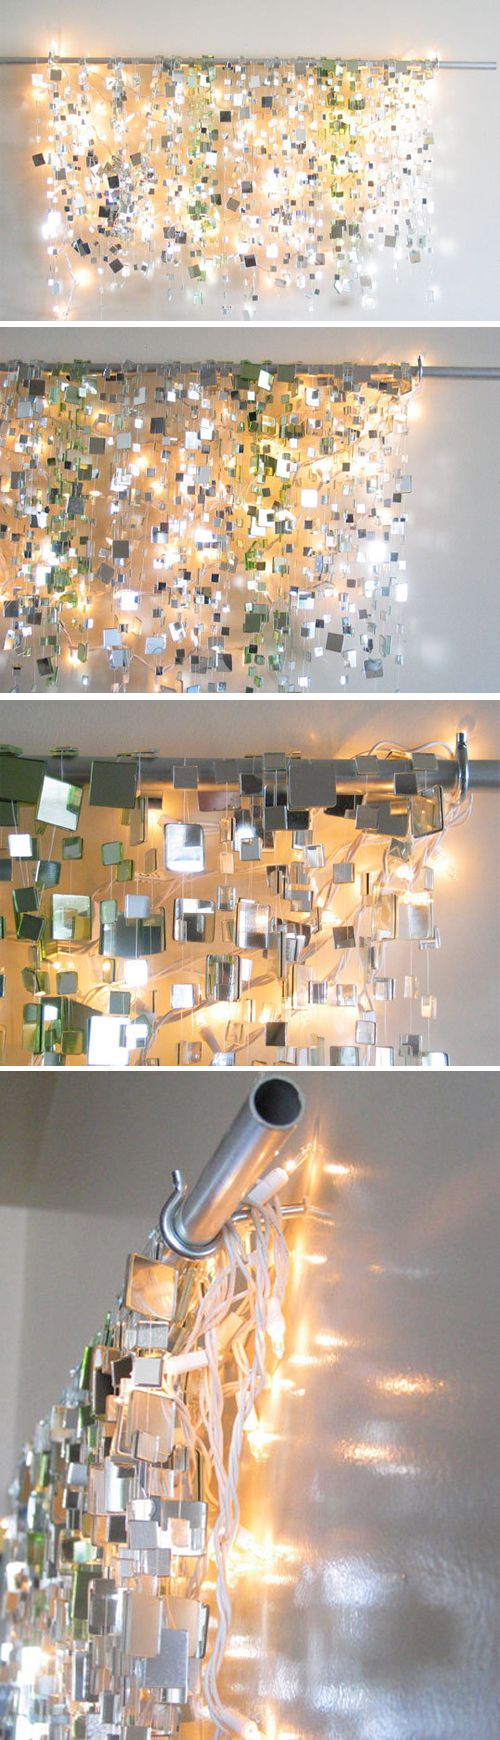 Small mirror tiles glued to fishing line with  lights behind. This would be pretty for a modern wedding backdrop